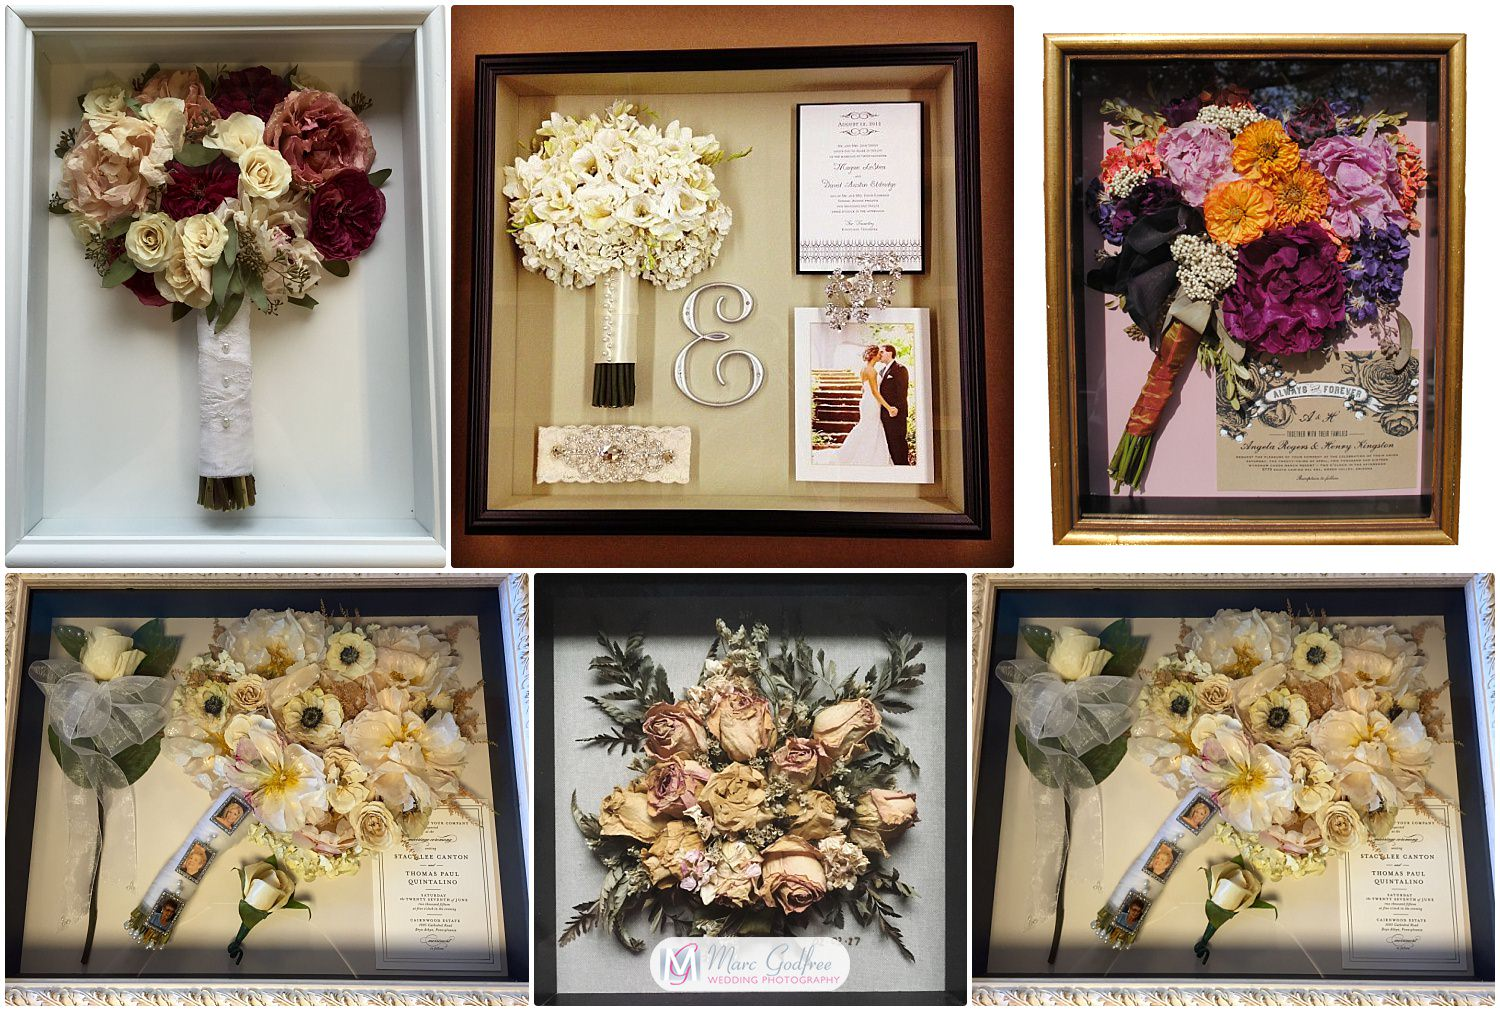 Post wedding flower ideas-dried